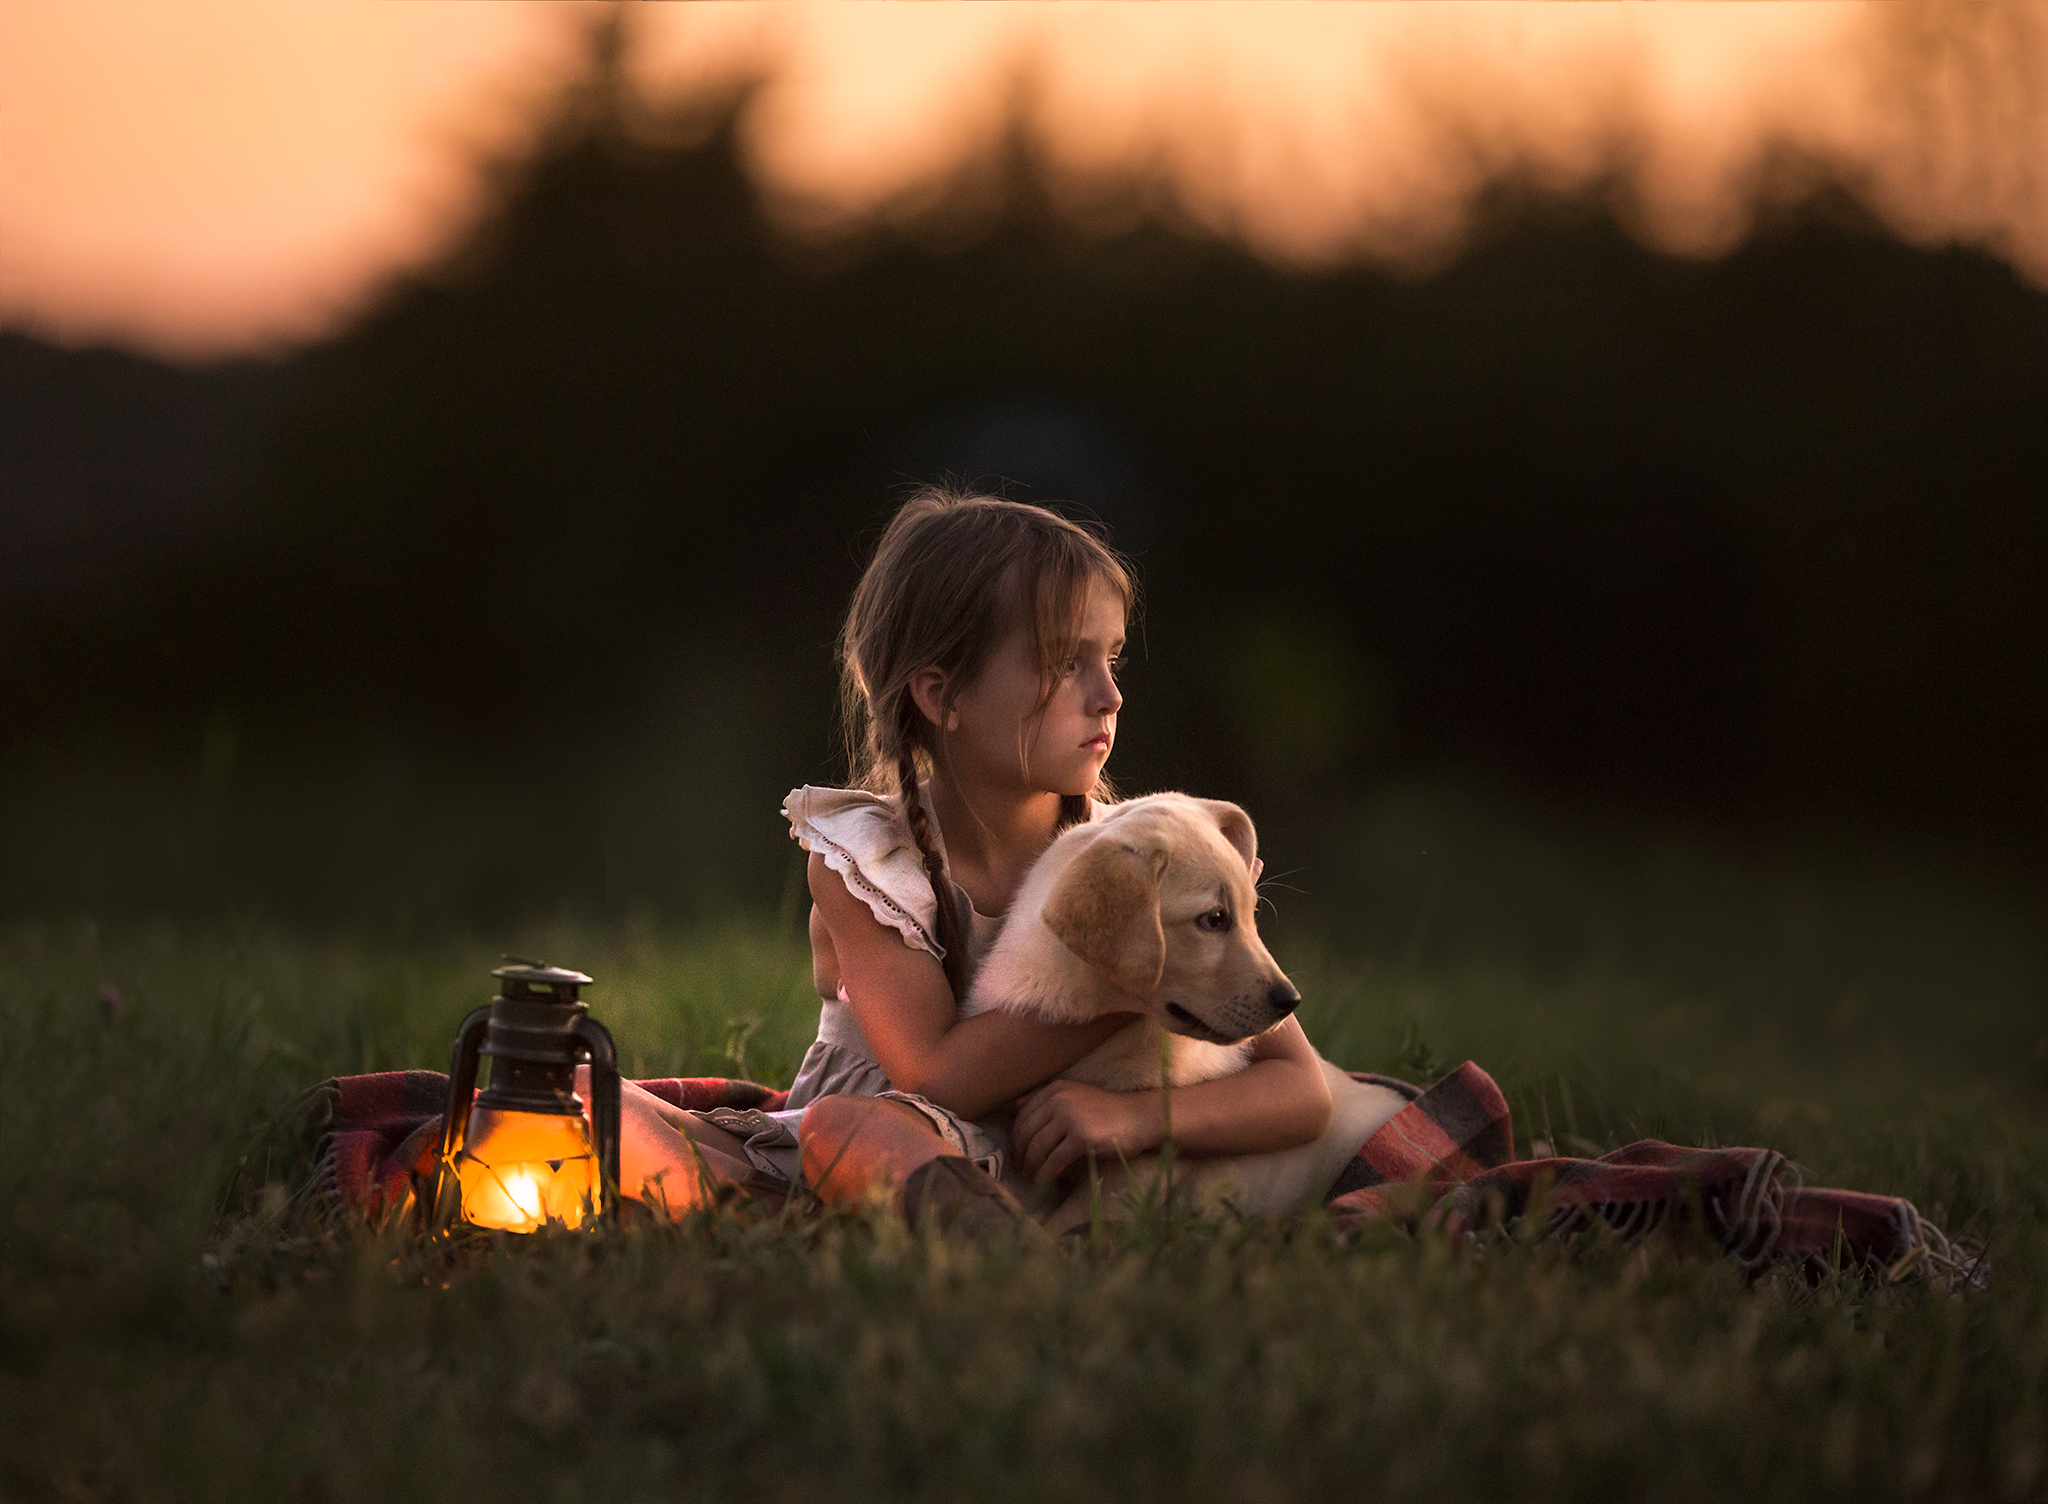 Portrait of a little girl with a puppy, photographed in Northern Virginia by Clare Ahalt Photography, a fine art photographer located in mid-maryland